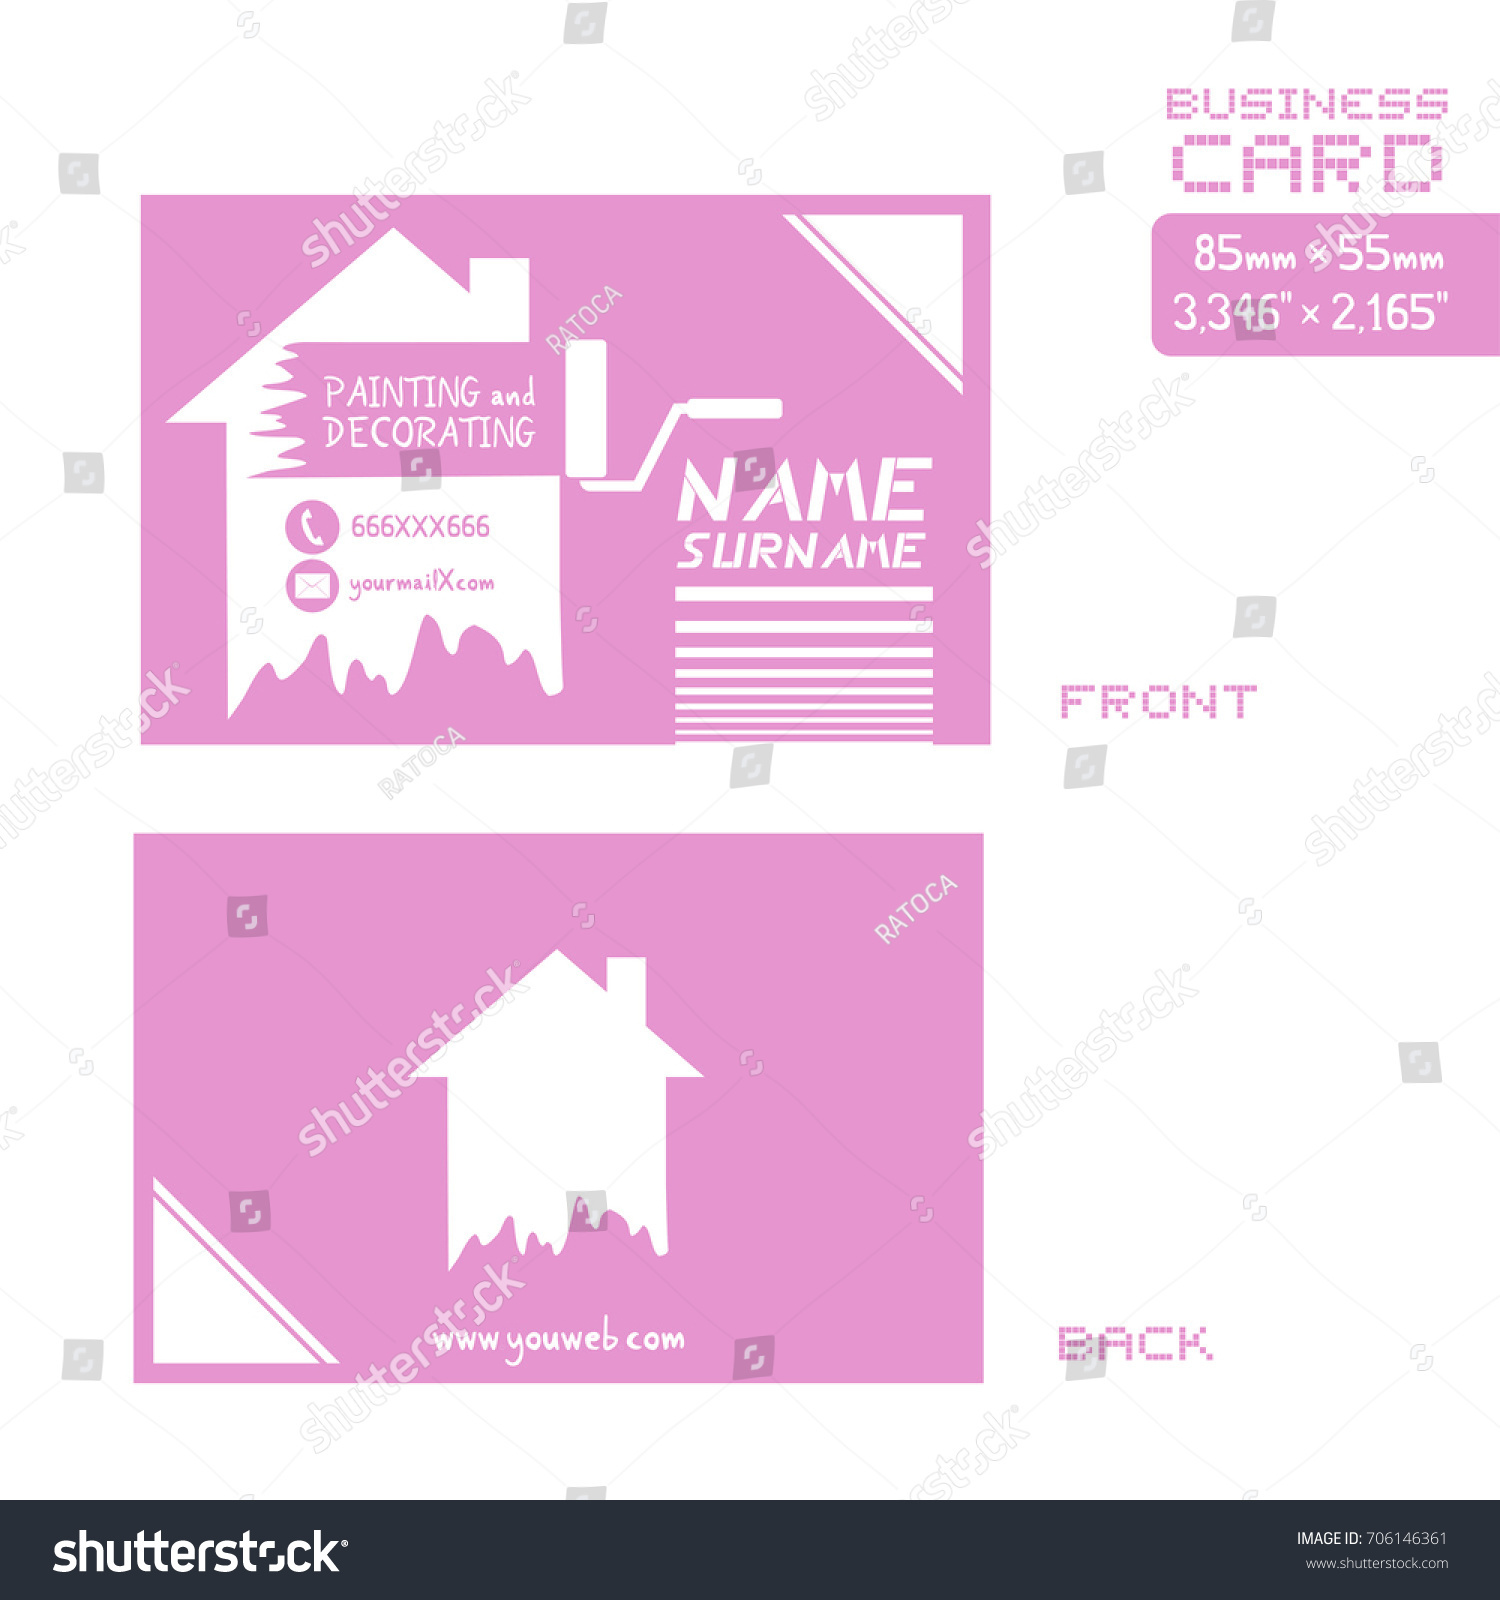 Business card painter worker stock vector 706146361 shutterstock business card for painter worker magicingreecefo Gallery